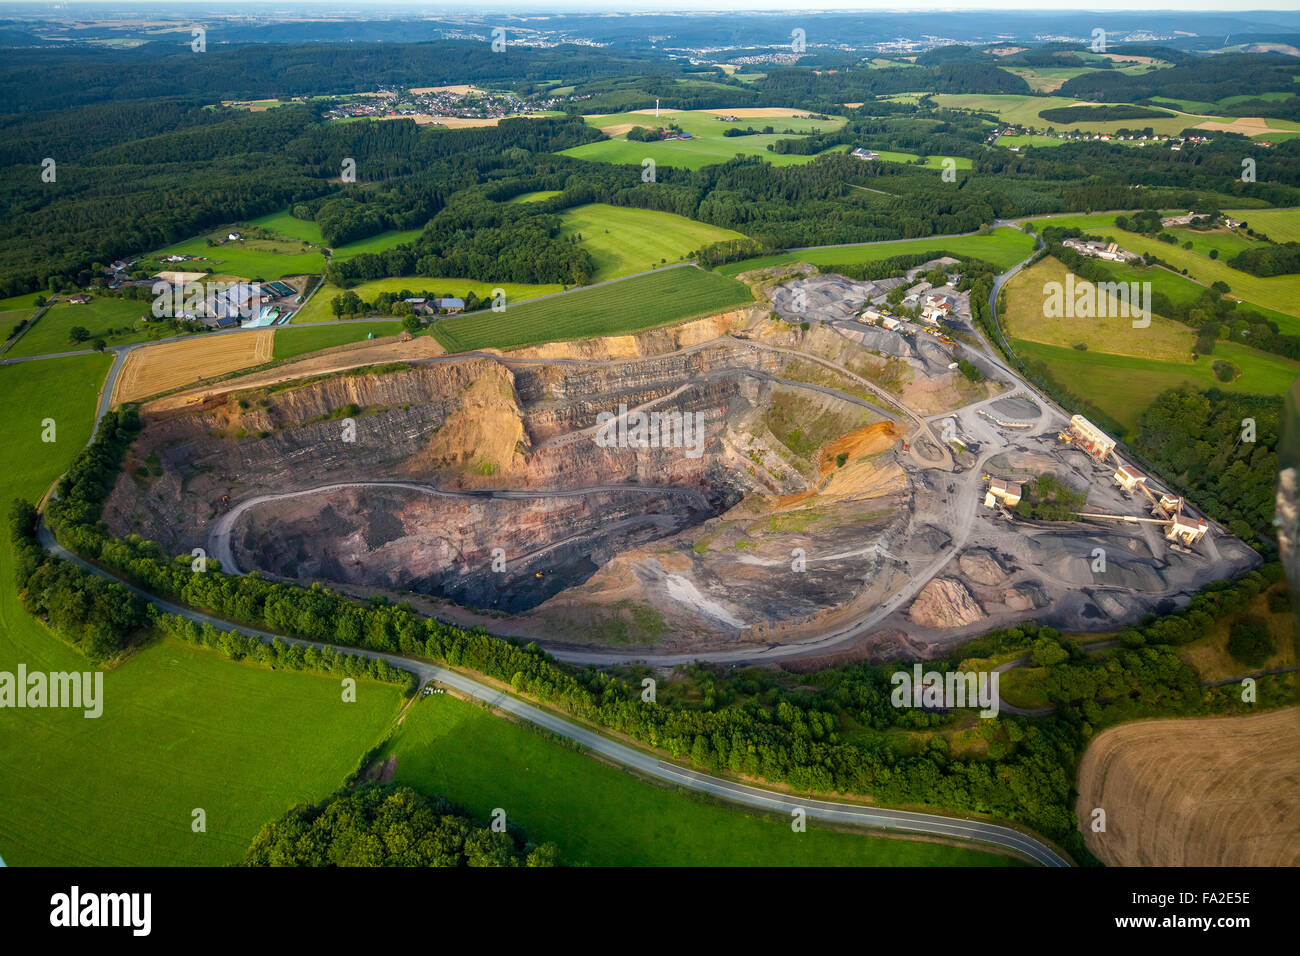 Aerial view, quarry Alb Bring near Eisborn, Albringen, Arnsberg, the Sauerland region, North Rhine Westphalia, Germany - Stock Image